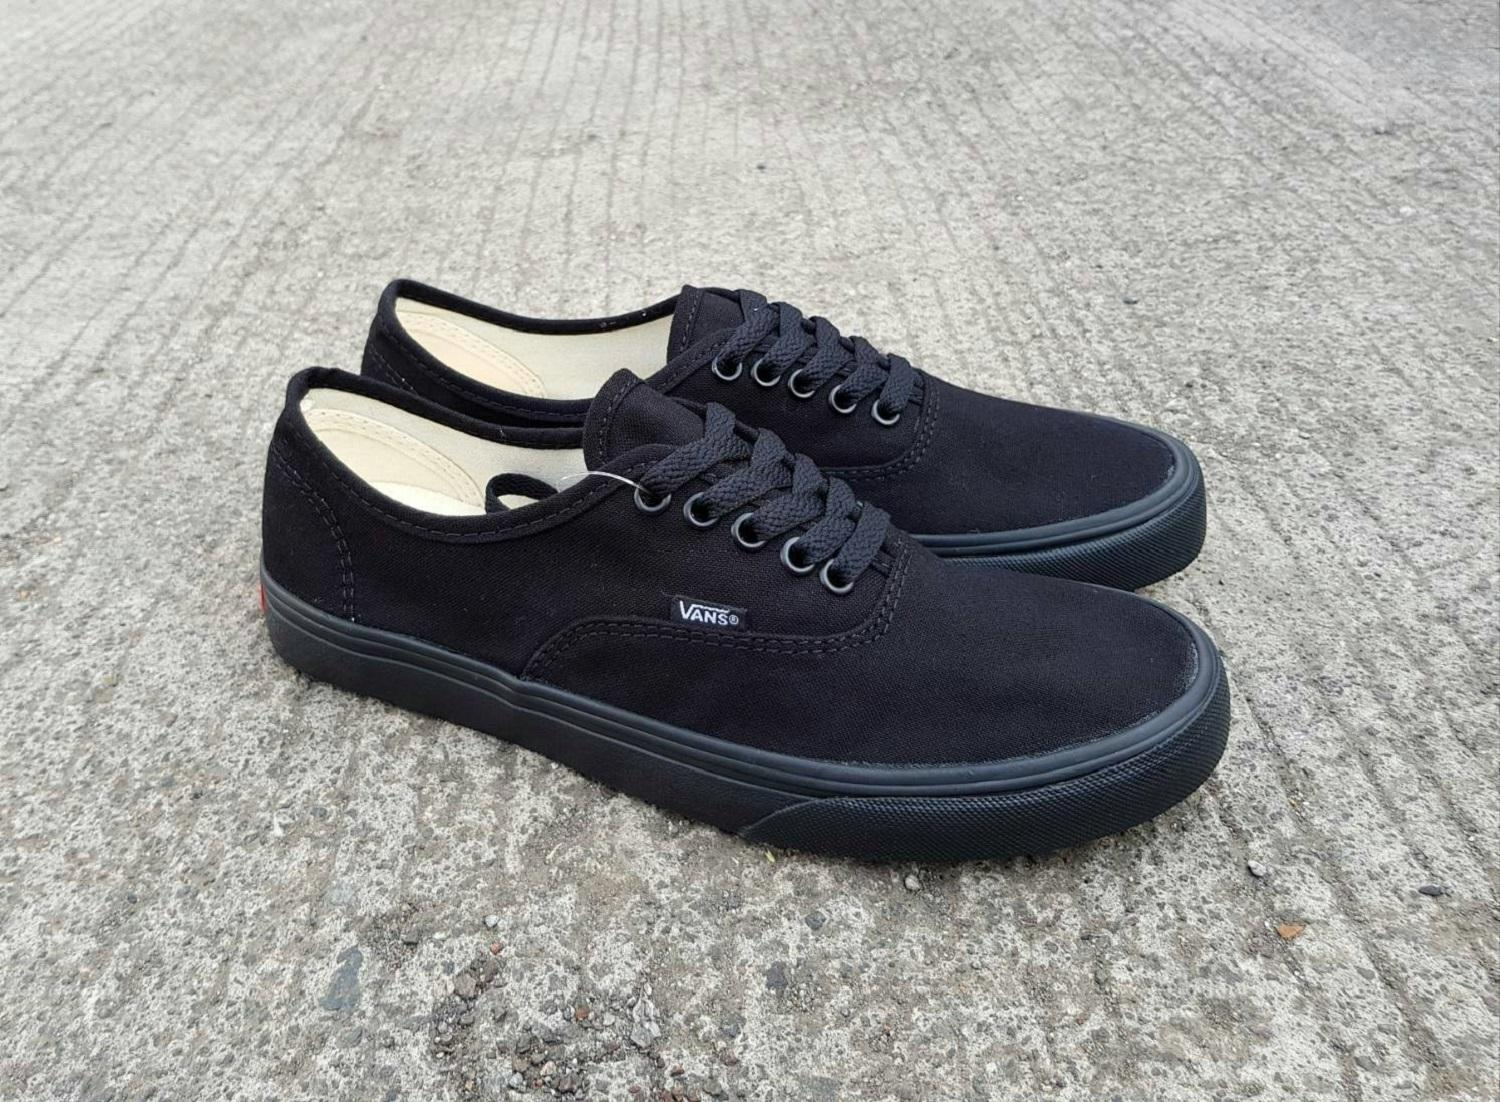 vns authentic all black wafle ifc